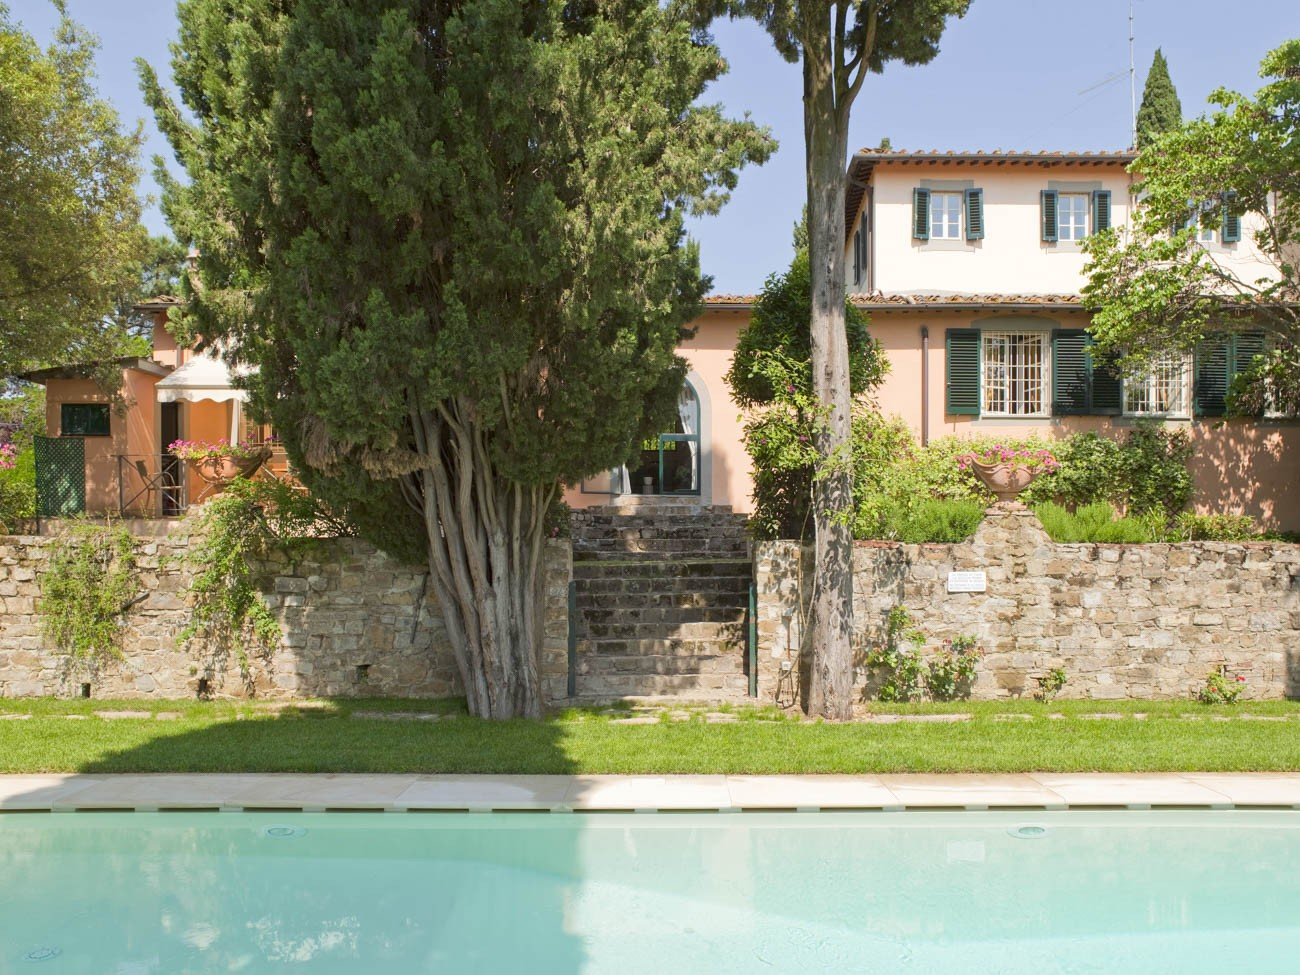 villas in tuscany with pool tuscany